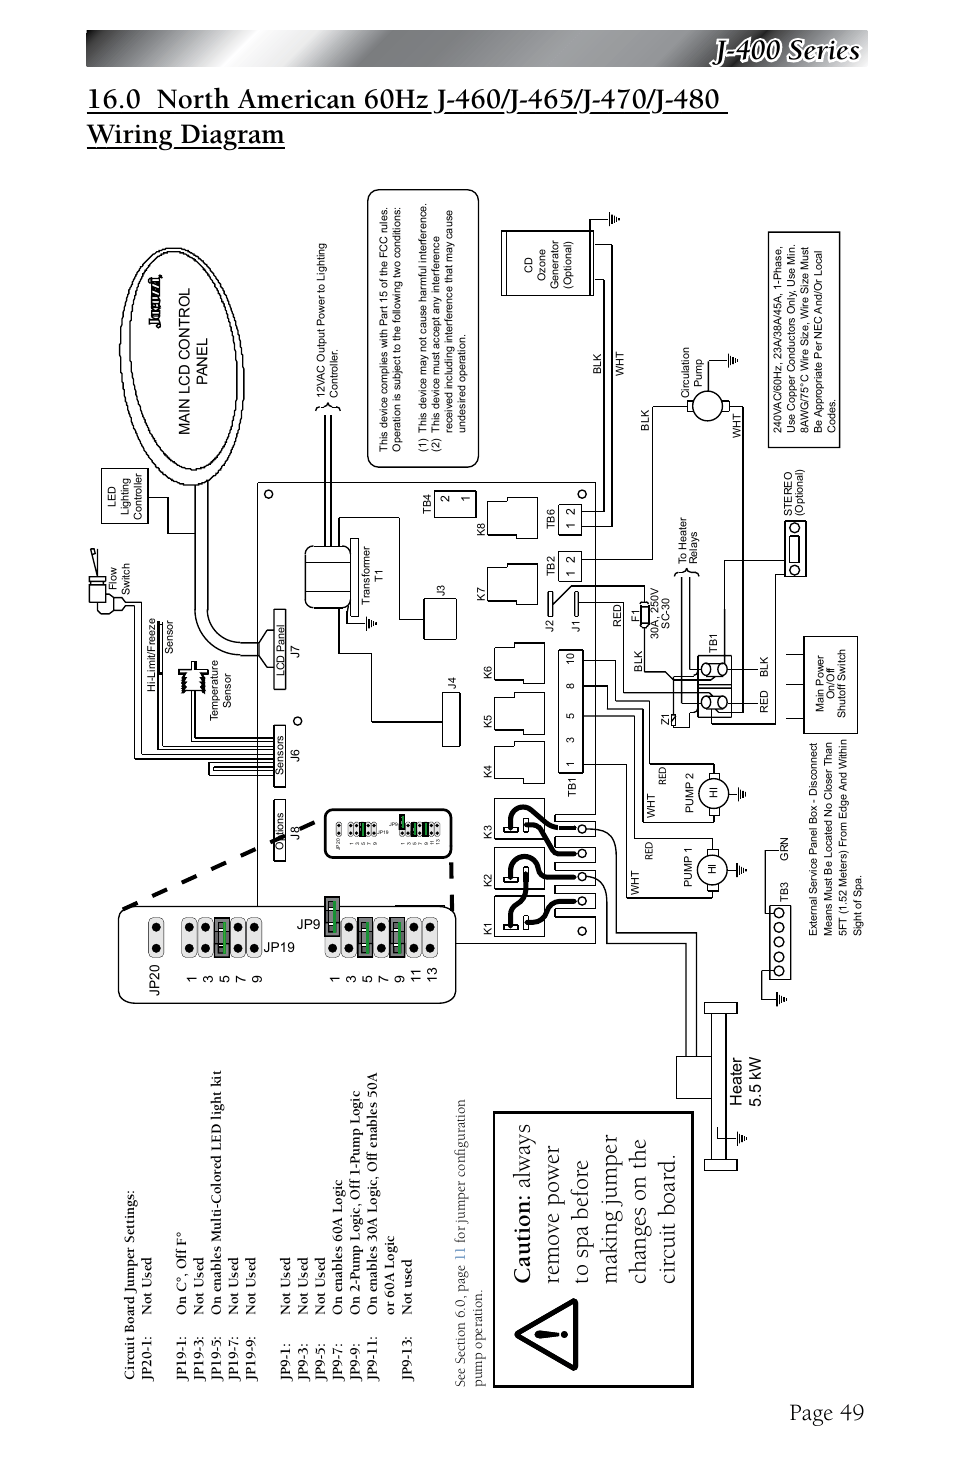 jacuzzi light wiring diagram wire center u2022 rh spaculus co Spa Wiring Schematic Wiring for 220 Spa